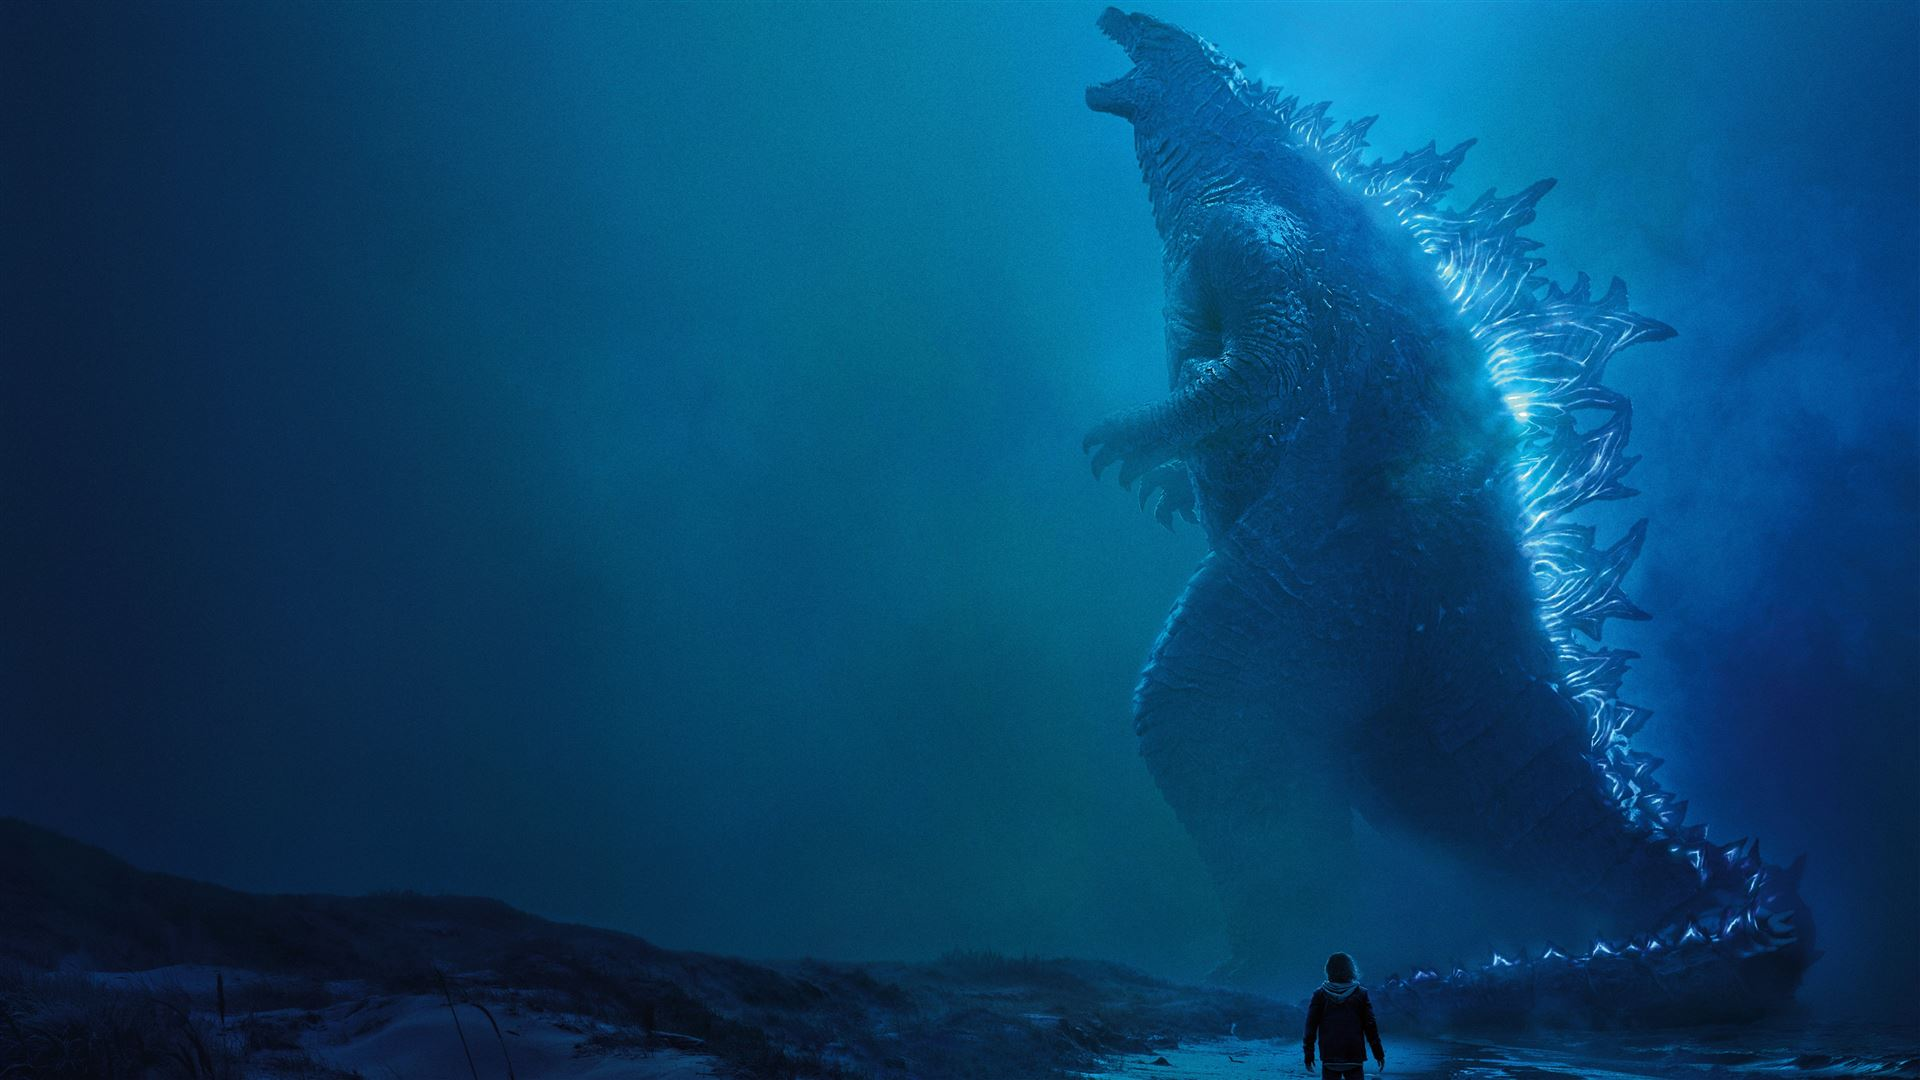 Godzilla King Of Monsters Wallpapers Wallpaper Cave